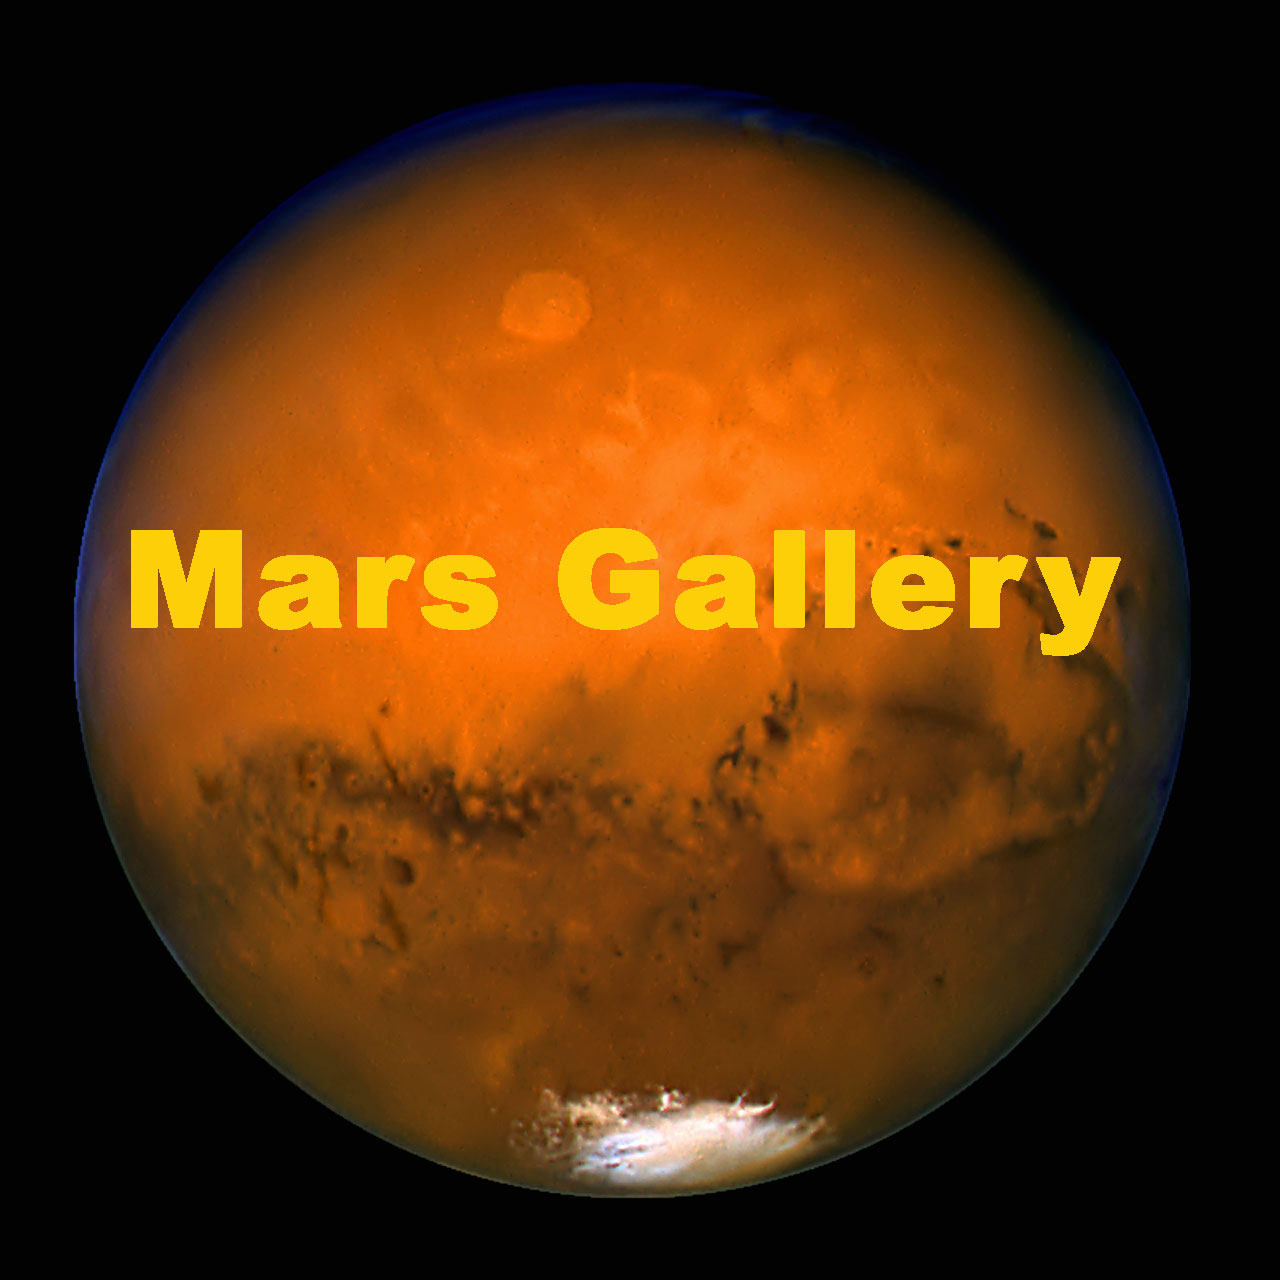 usa today on planet mars - photo #24